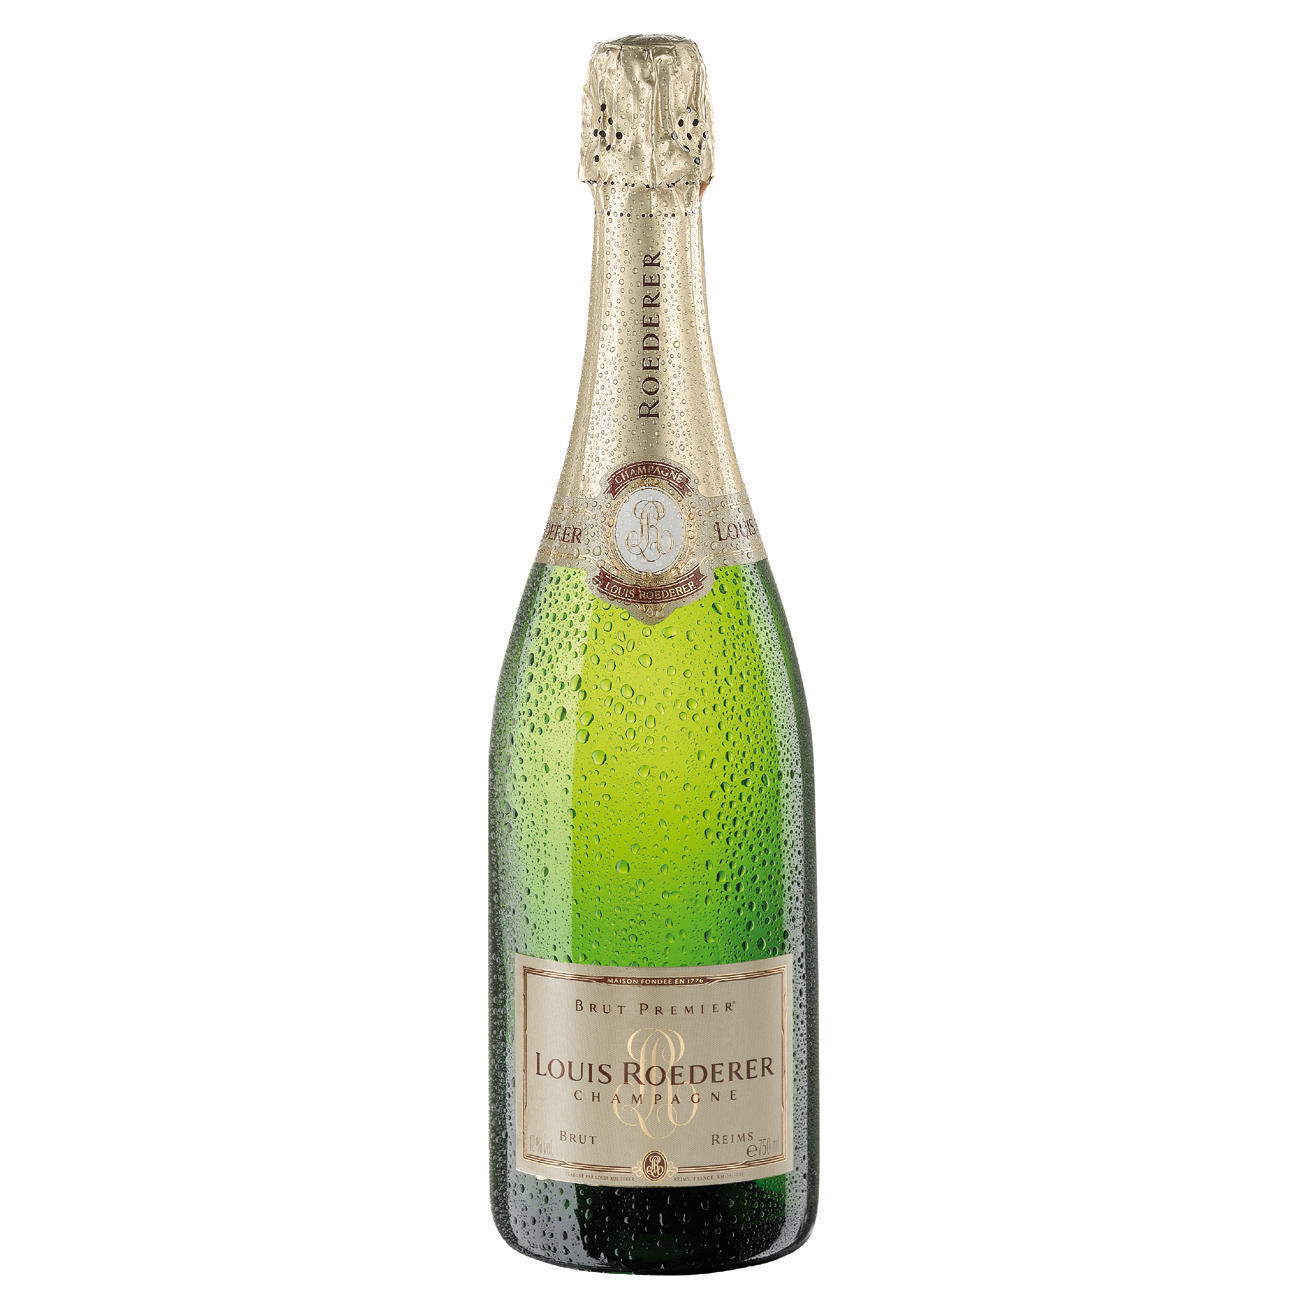 best w with Ch Agner Louis Roederer Brut Premier Reims Ch Agne Aoc Frankreich on Car Wallpapers together with CTM00000OV furthermore Tecna Fata Enchantix 518340467 further 1925838 in addition Magic.